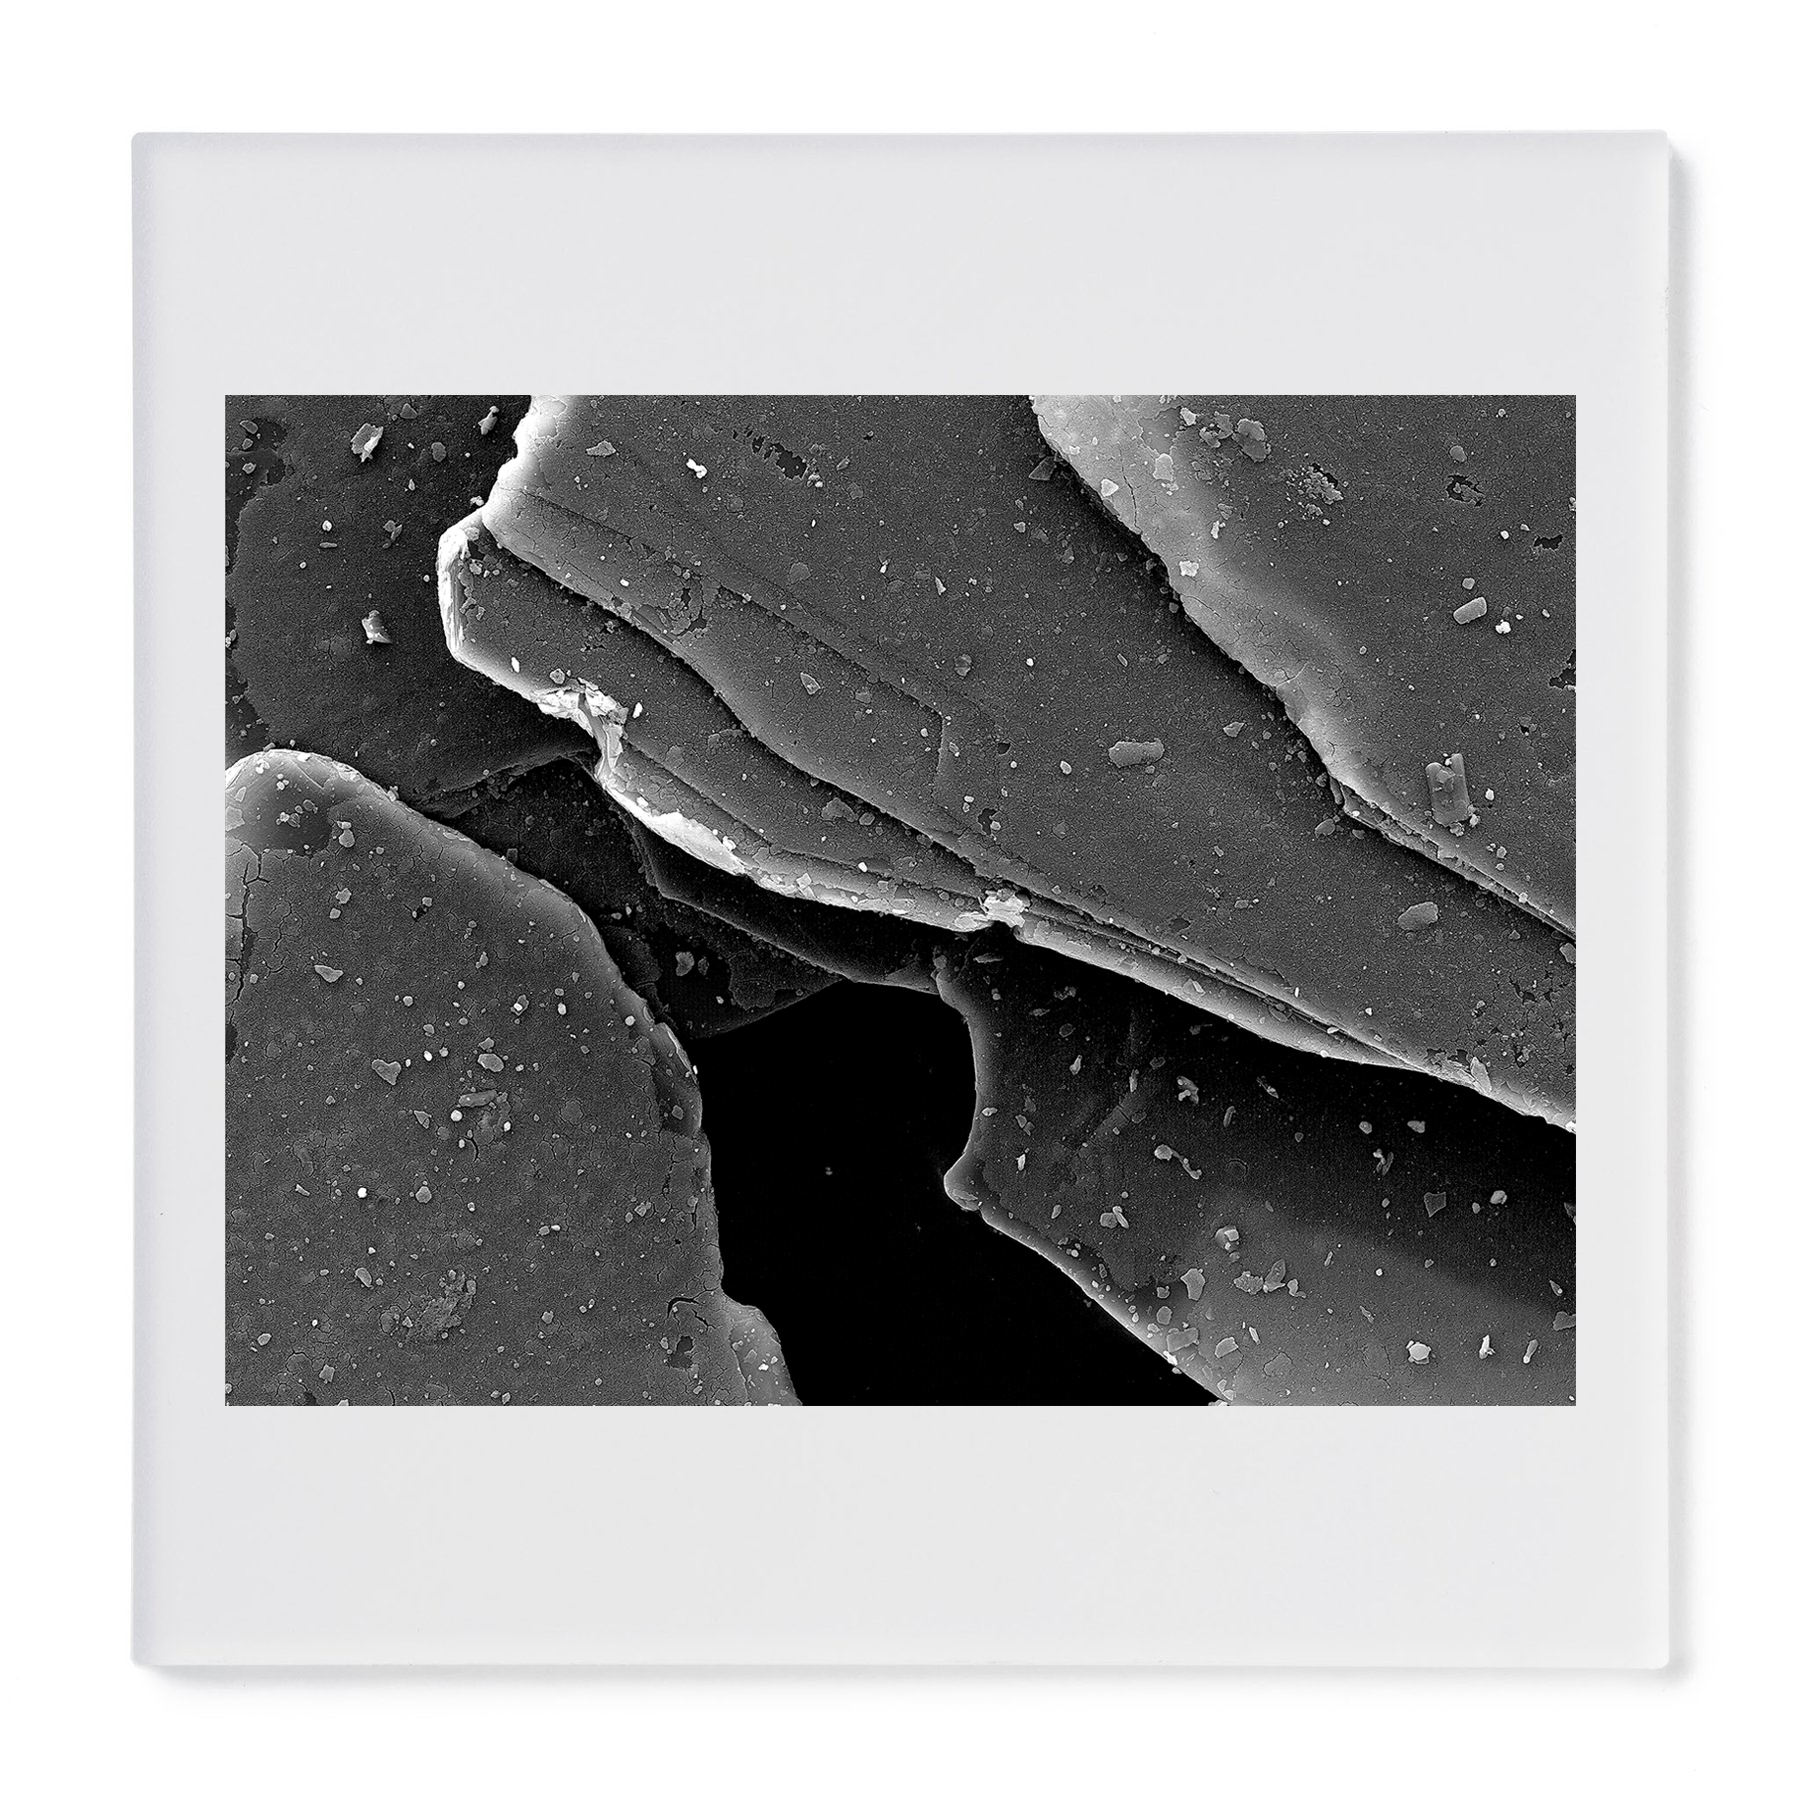 Mica diamond pigment #1. Gelatin silver print mounted on acrylic. 2015